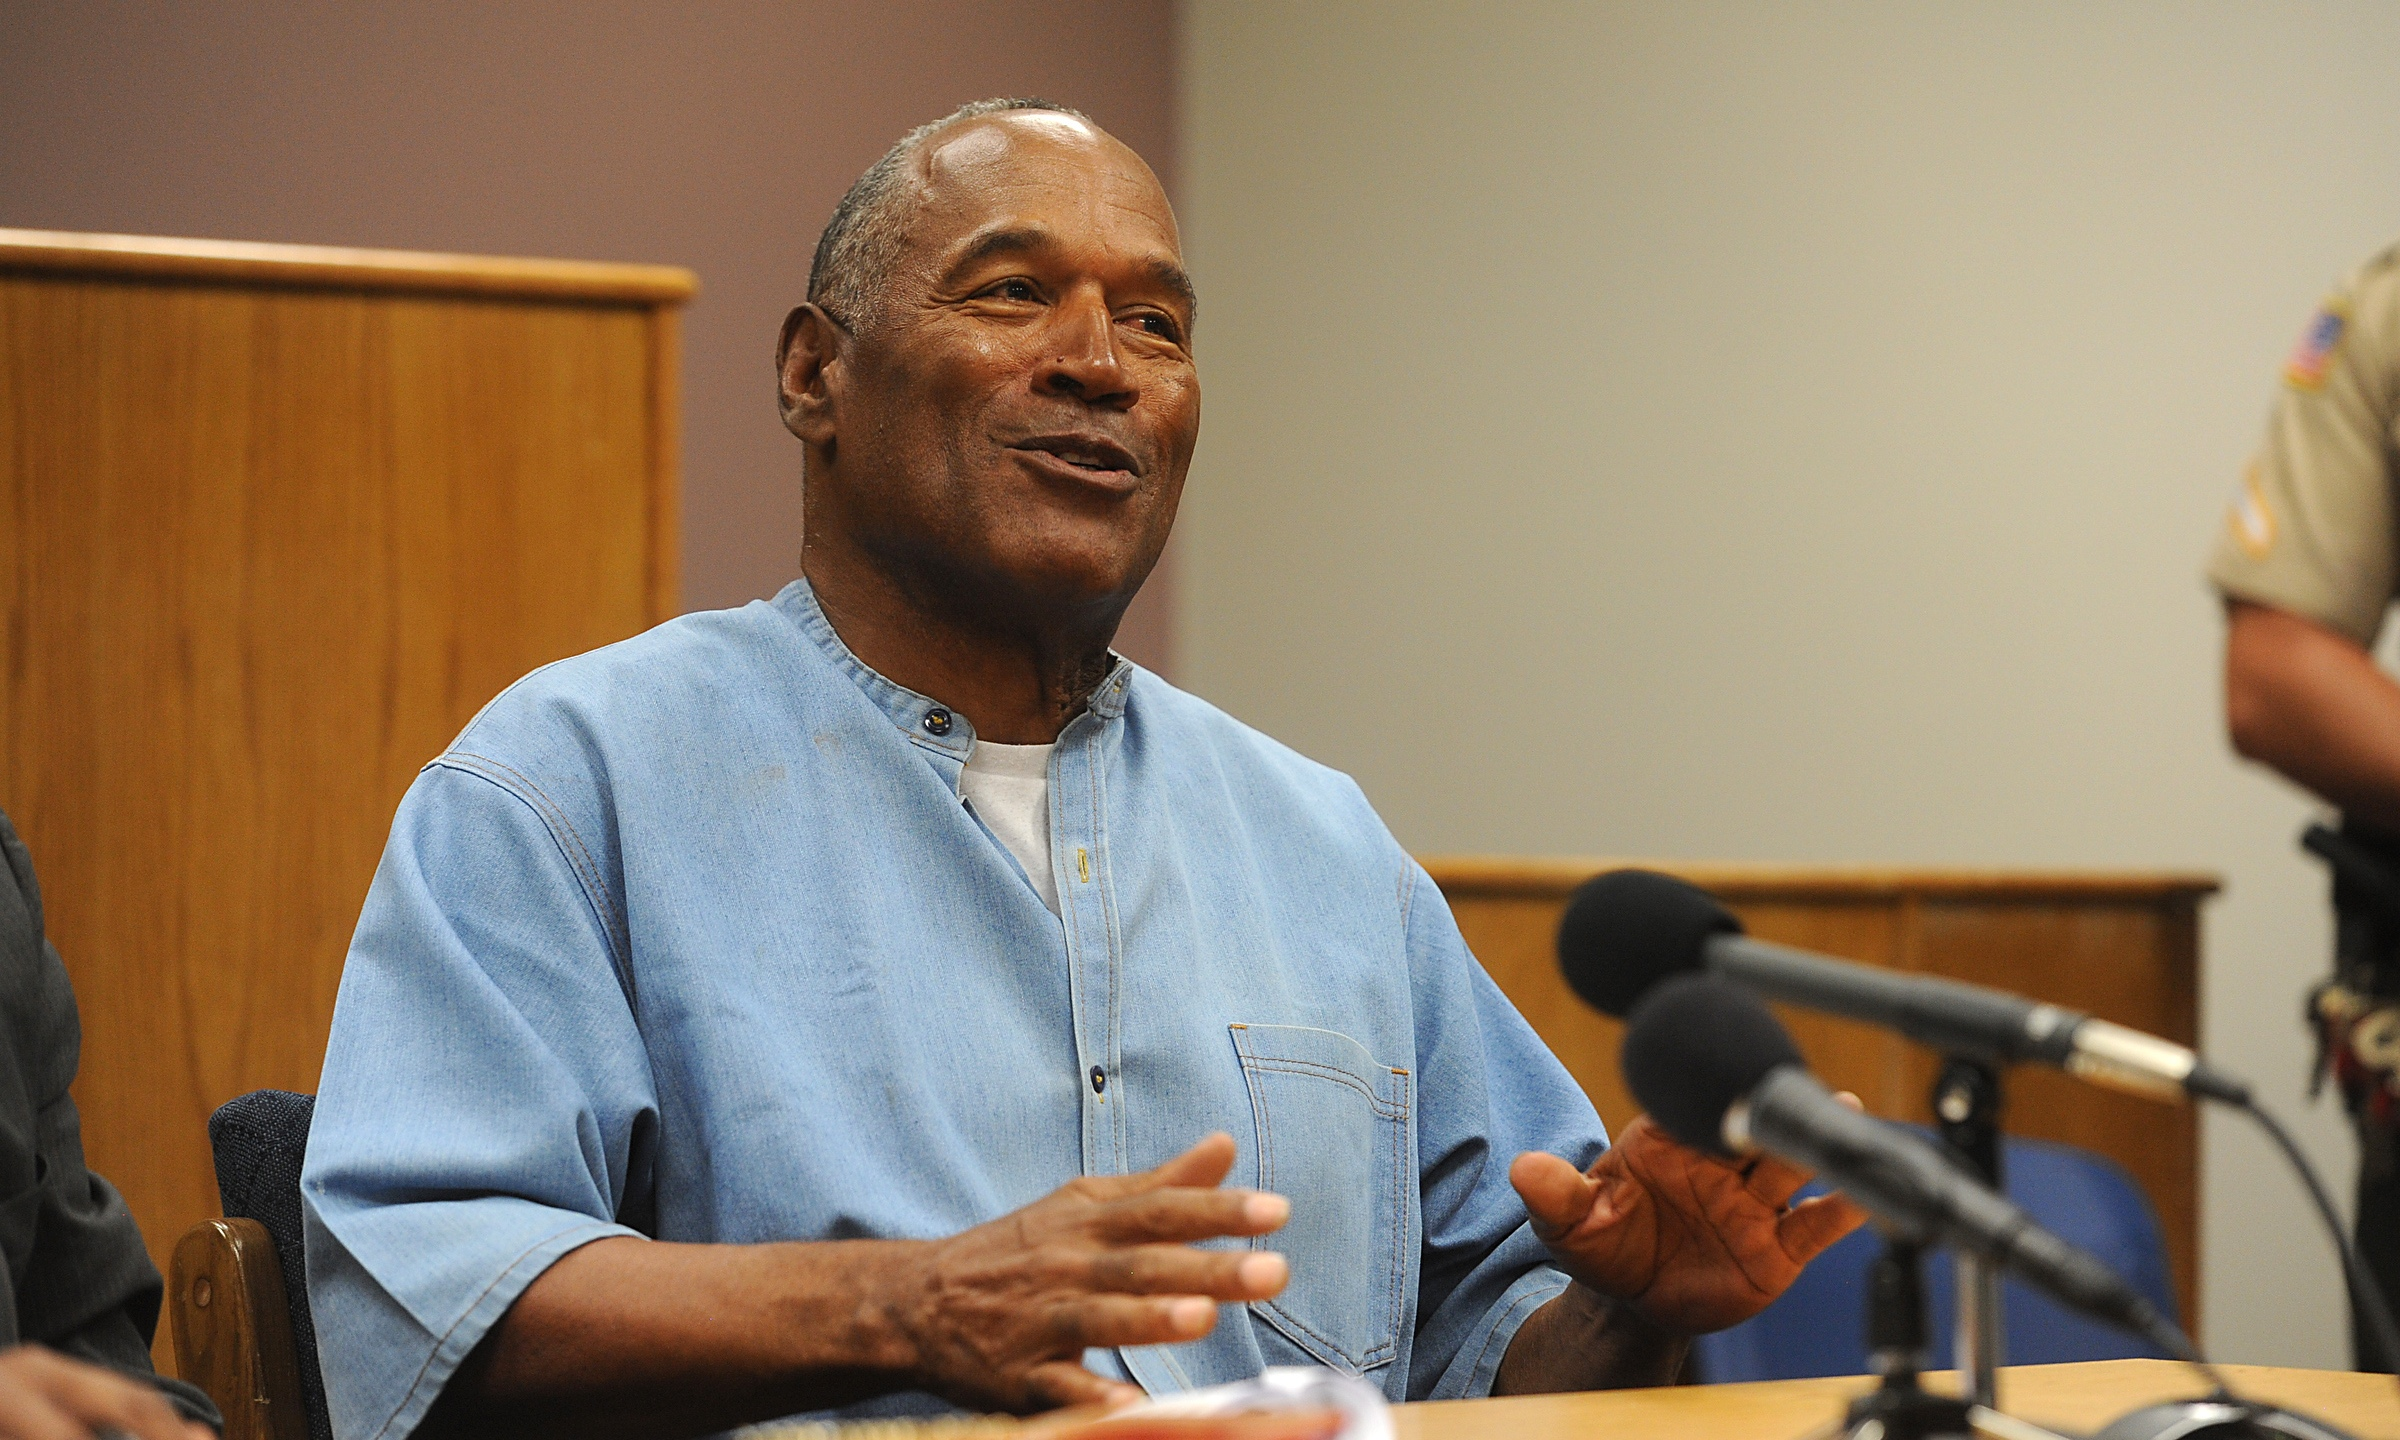 O.J. Simpson attends a parole hearing at Lovelock Correctional Center in Nevada on July 20, 2017. (Credit: Jason Bean / Getty Images)